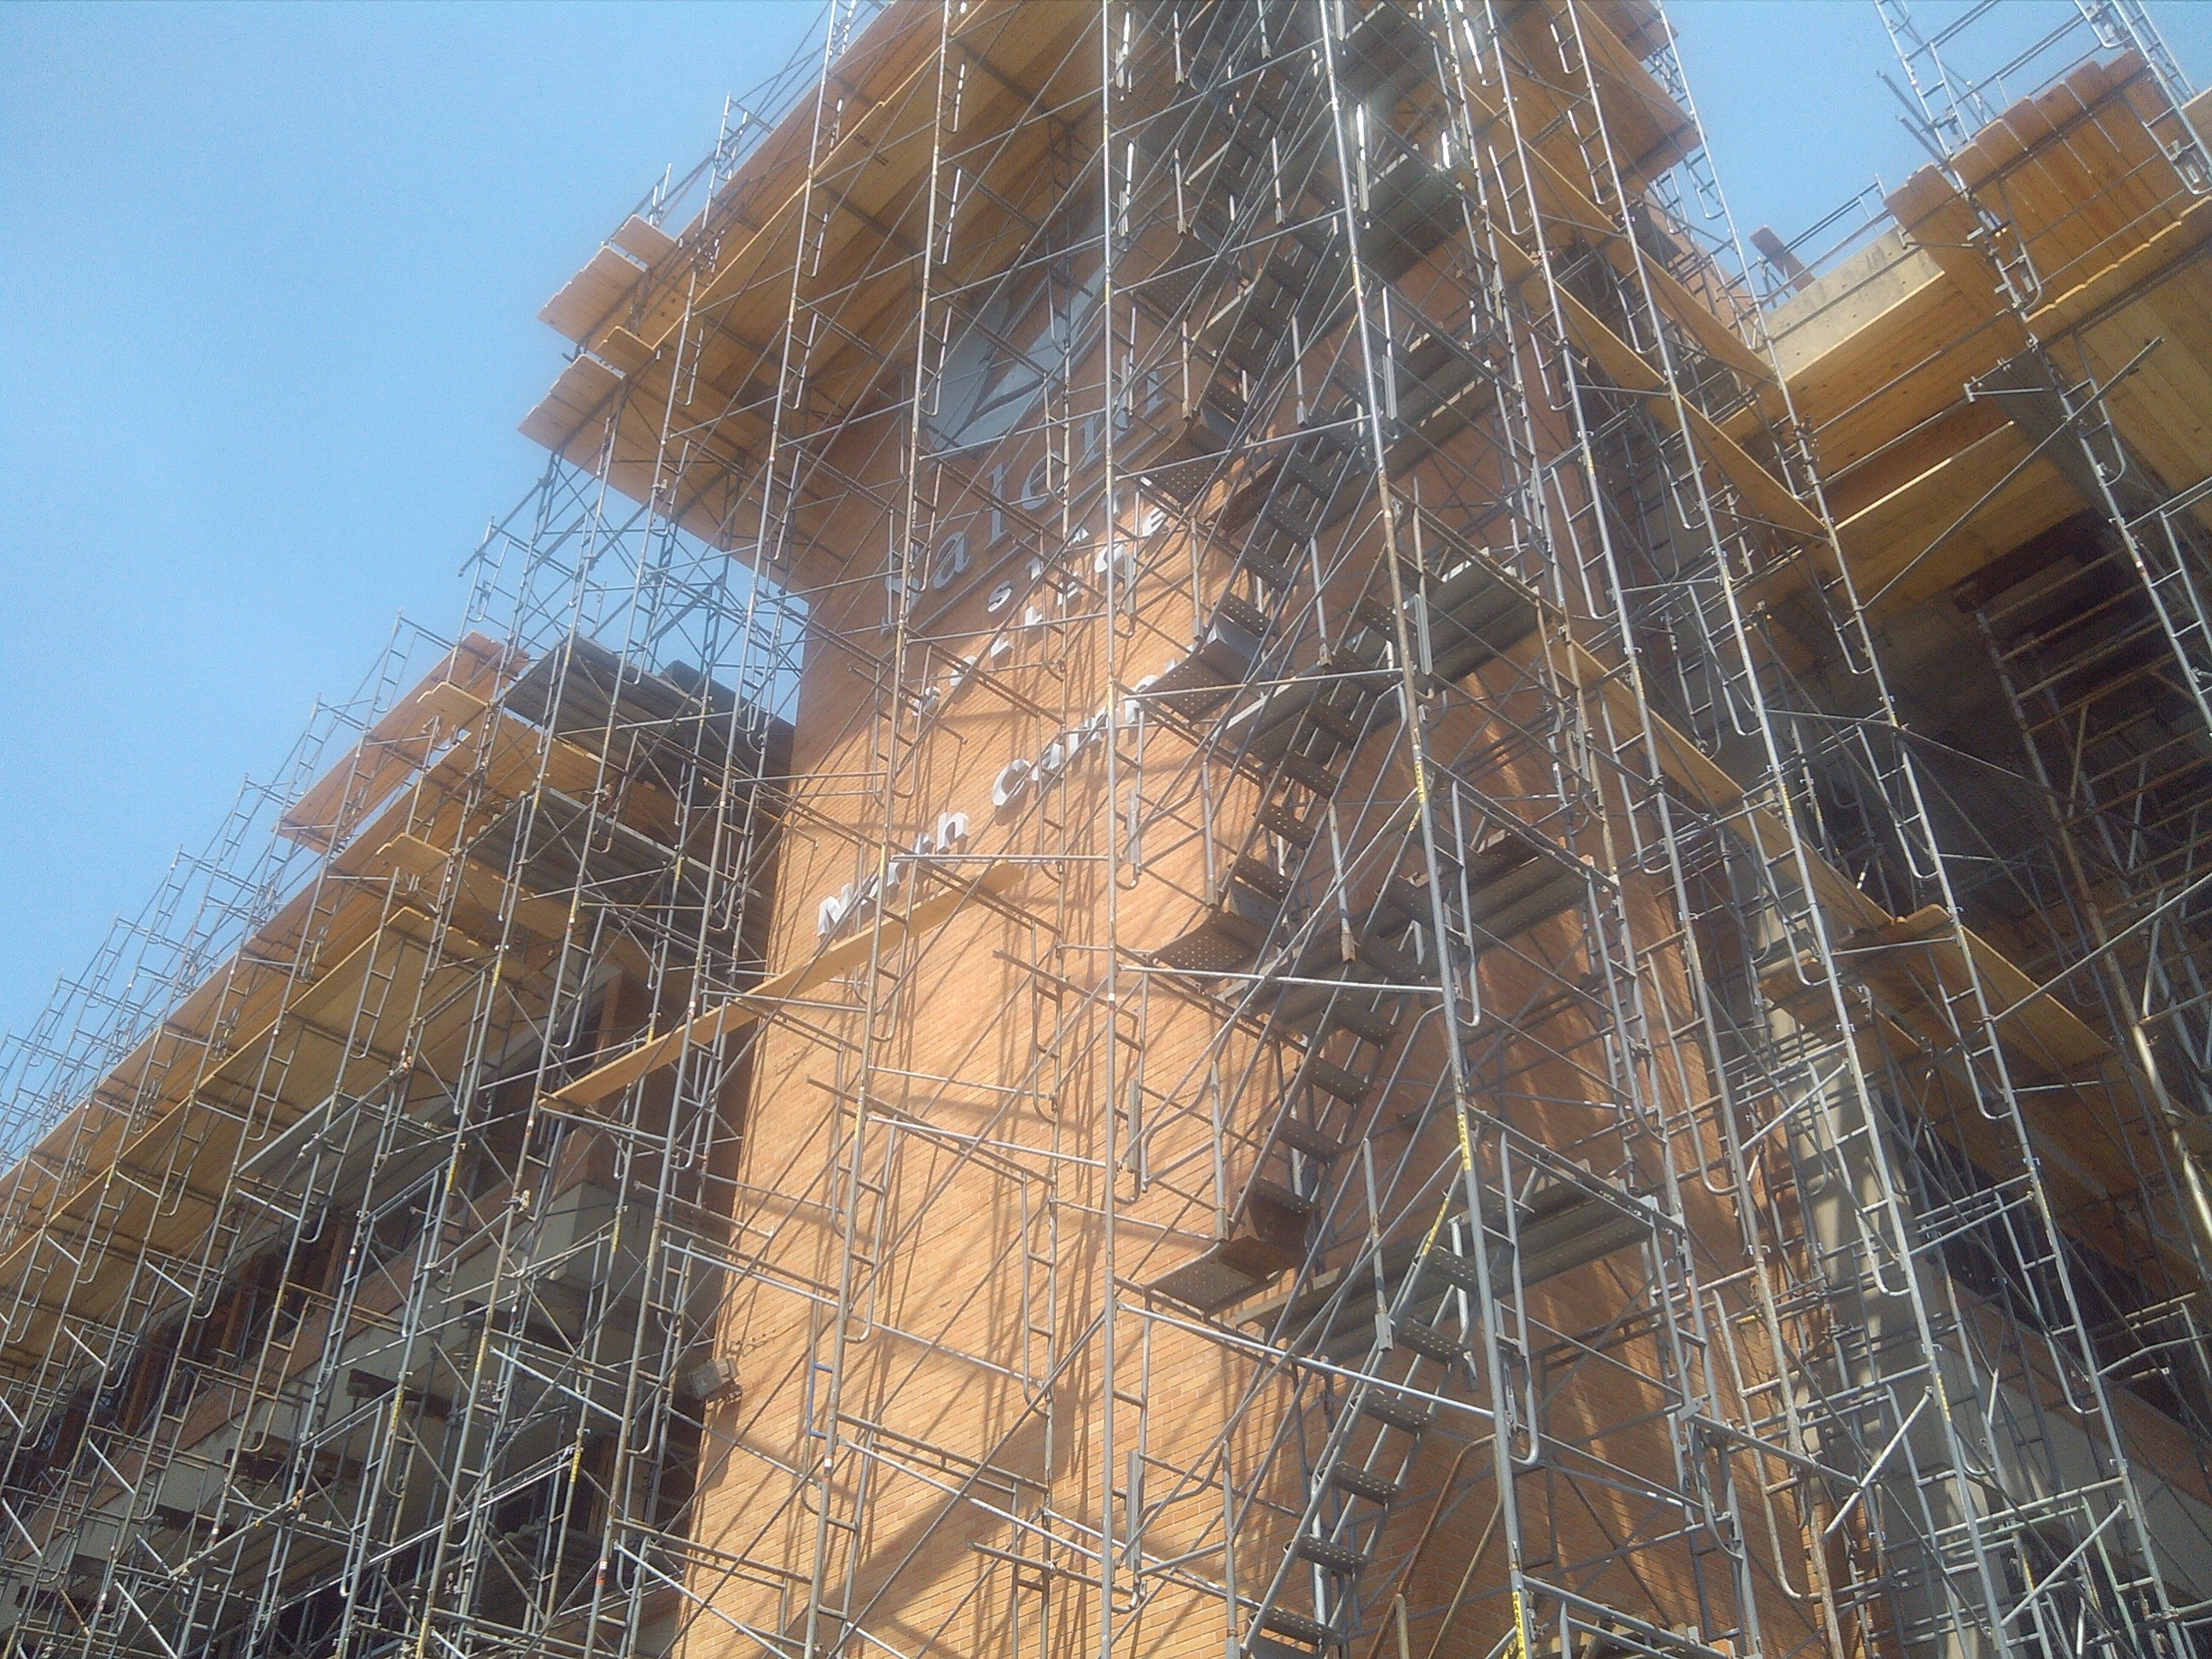 scaffolding at Salem State University